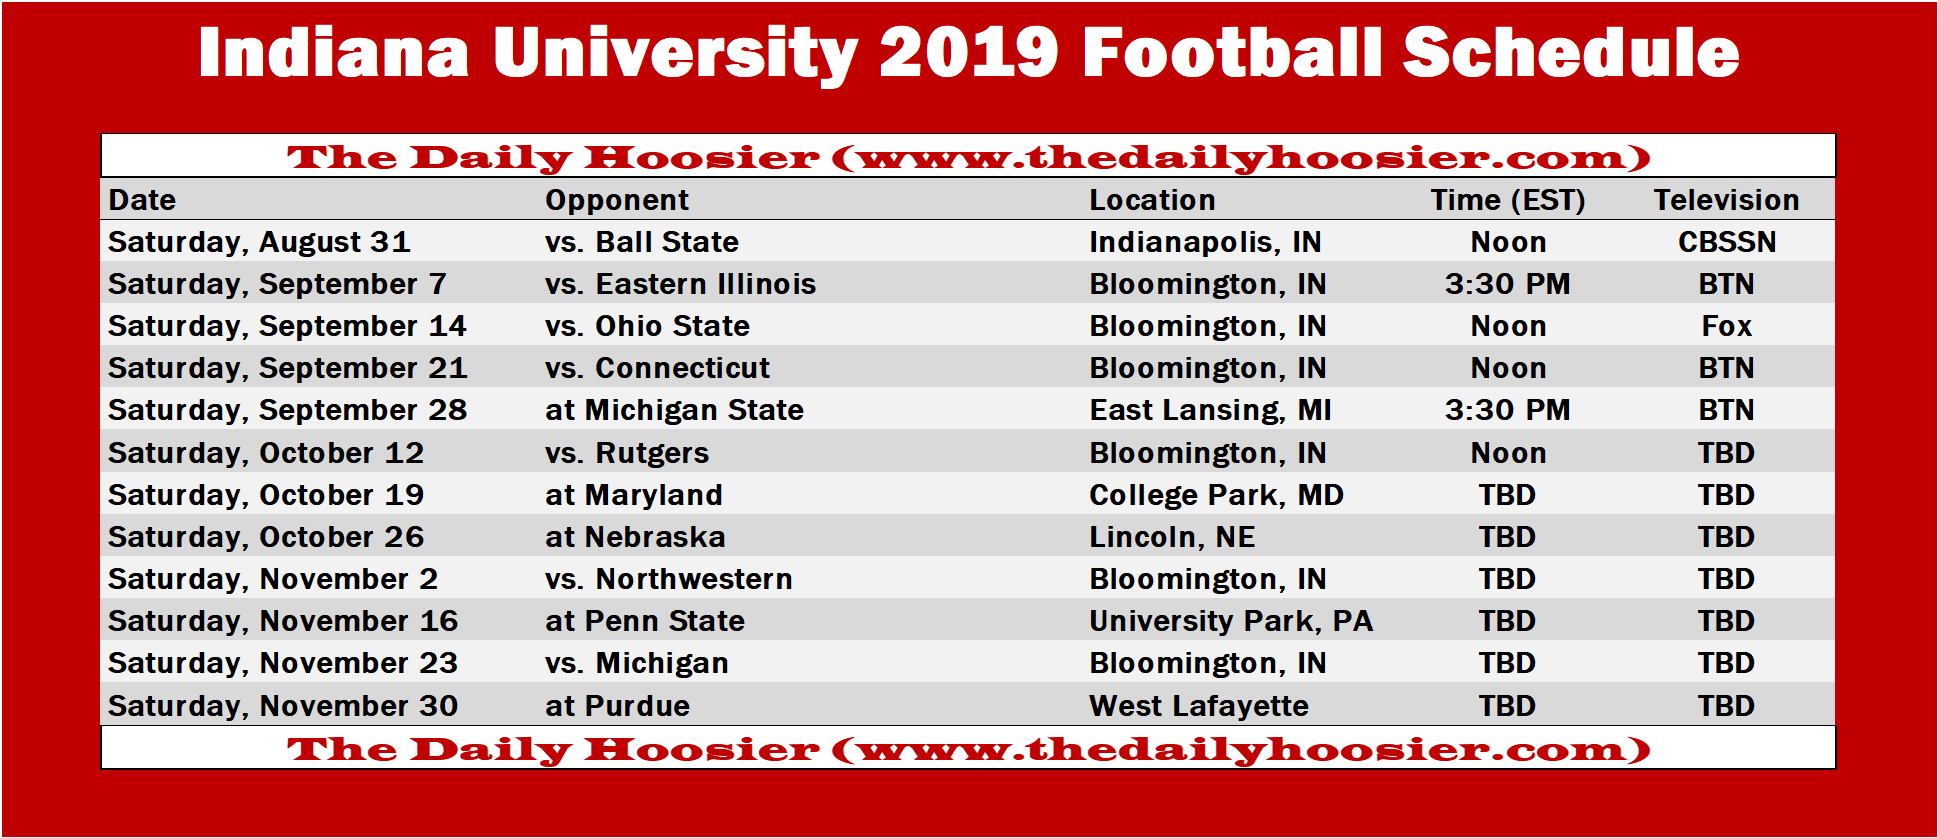 Iu Home Football Schedule 2020.Indiana Football The 2019 Schedule Printable Version